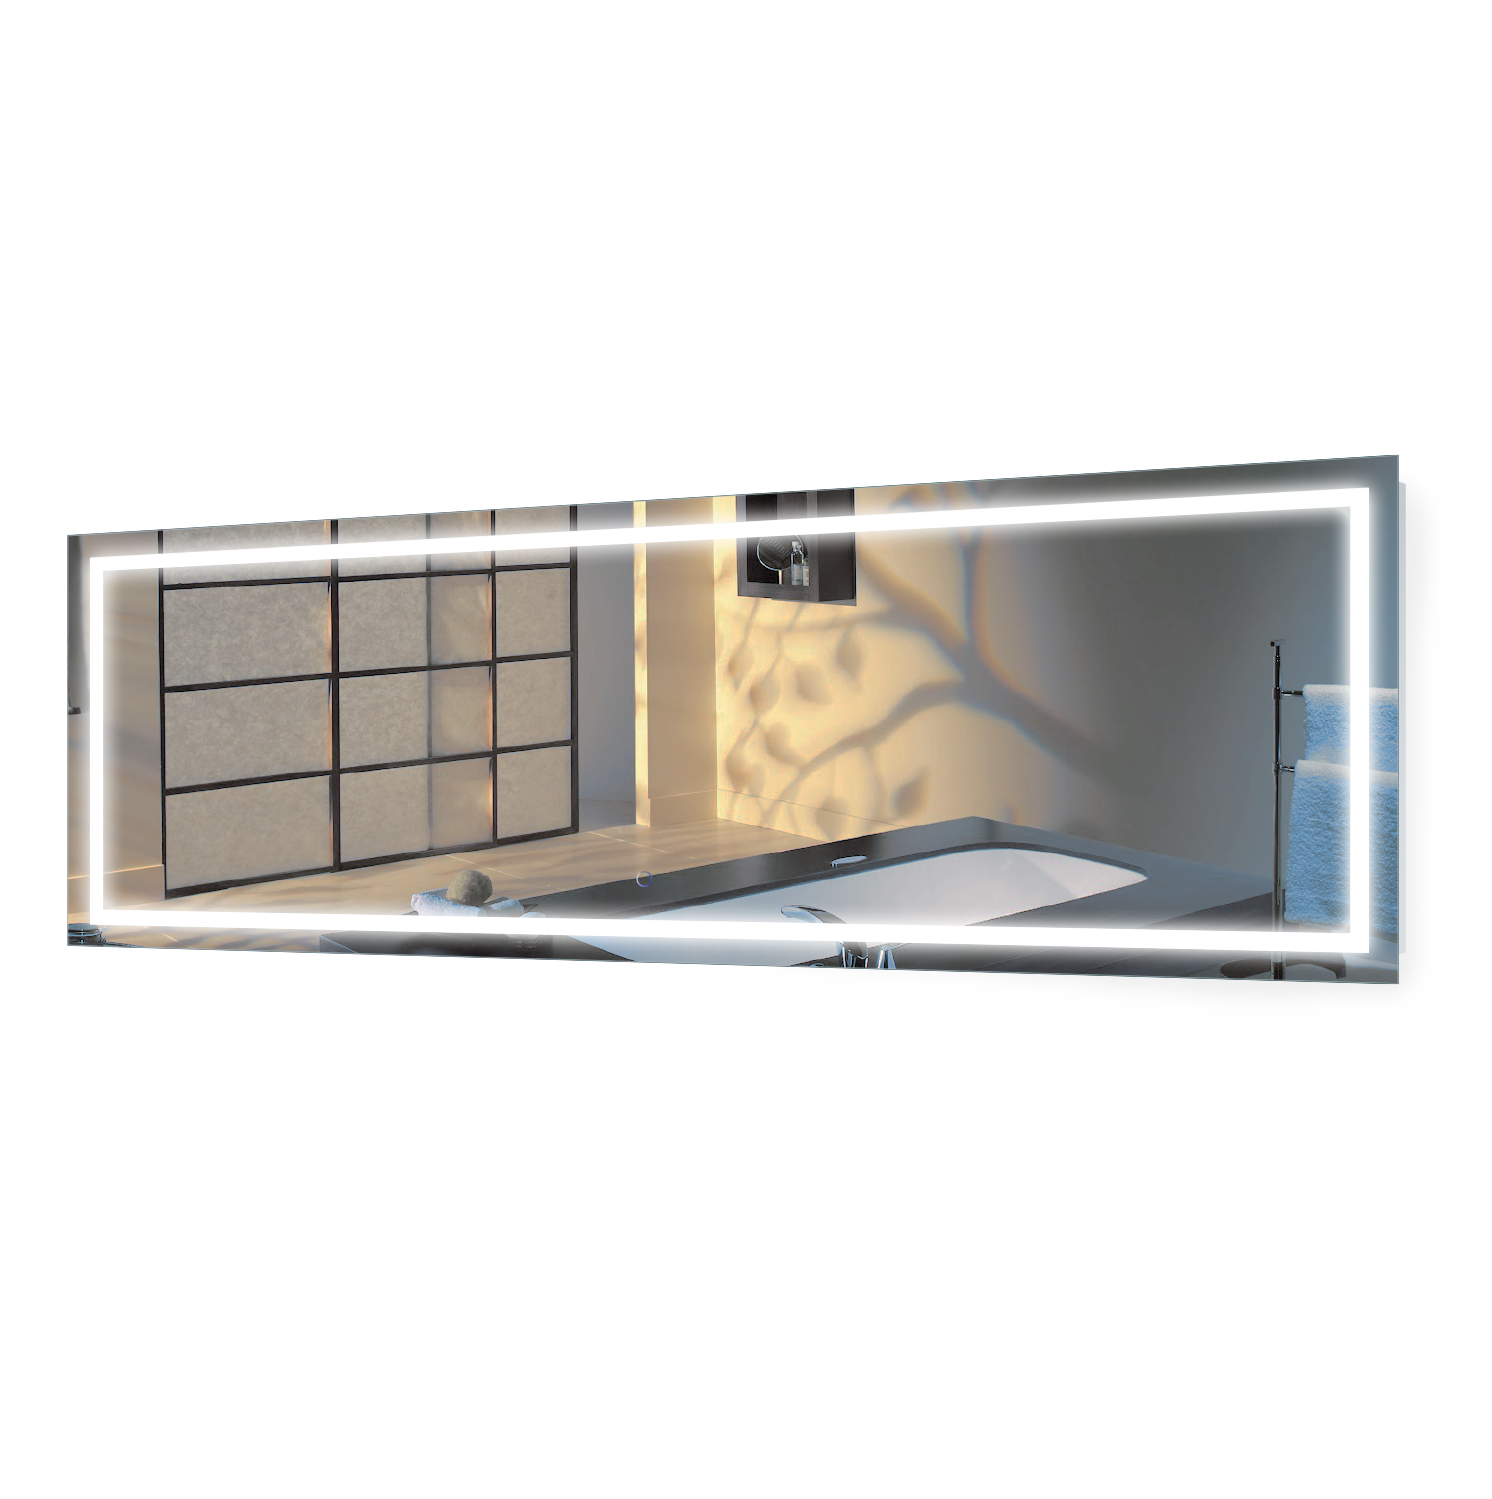 Large 84 Inch X 30 Inch Led Bathroom Mirror Lighted Vanity Mirror Includes Dimmer Defogger